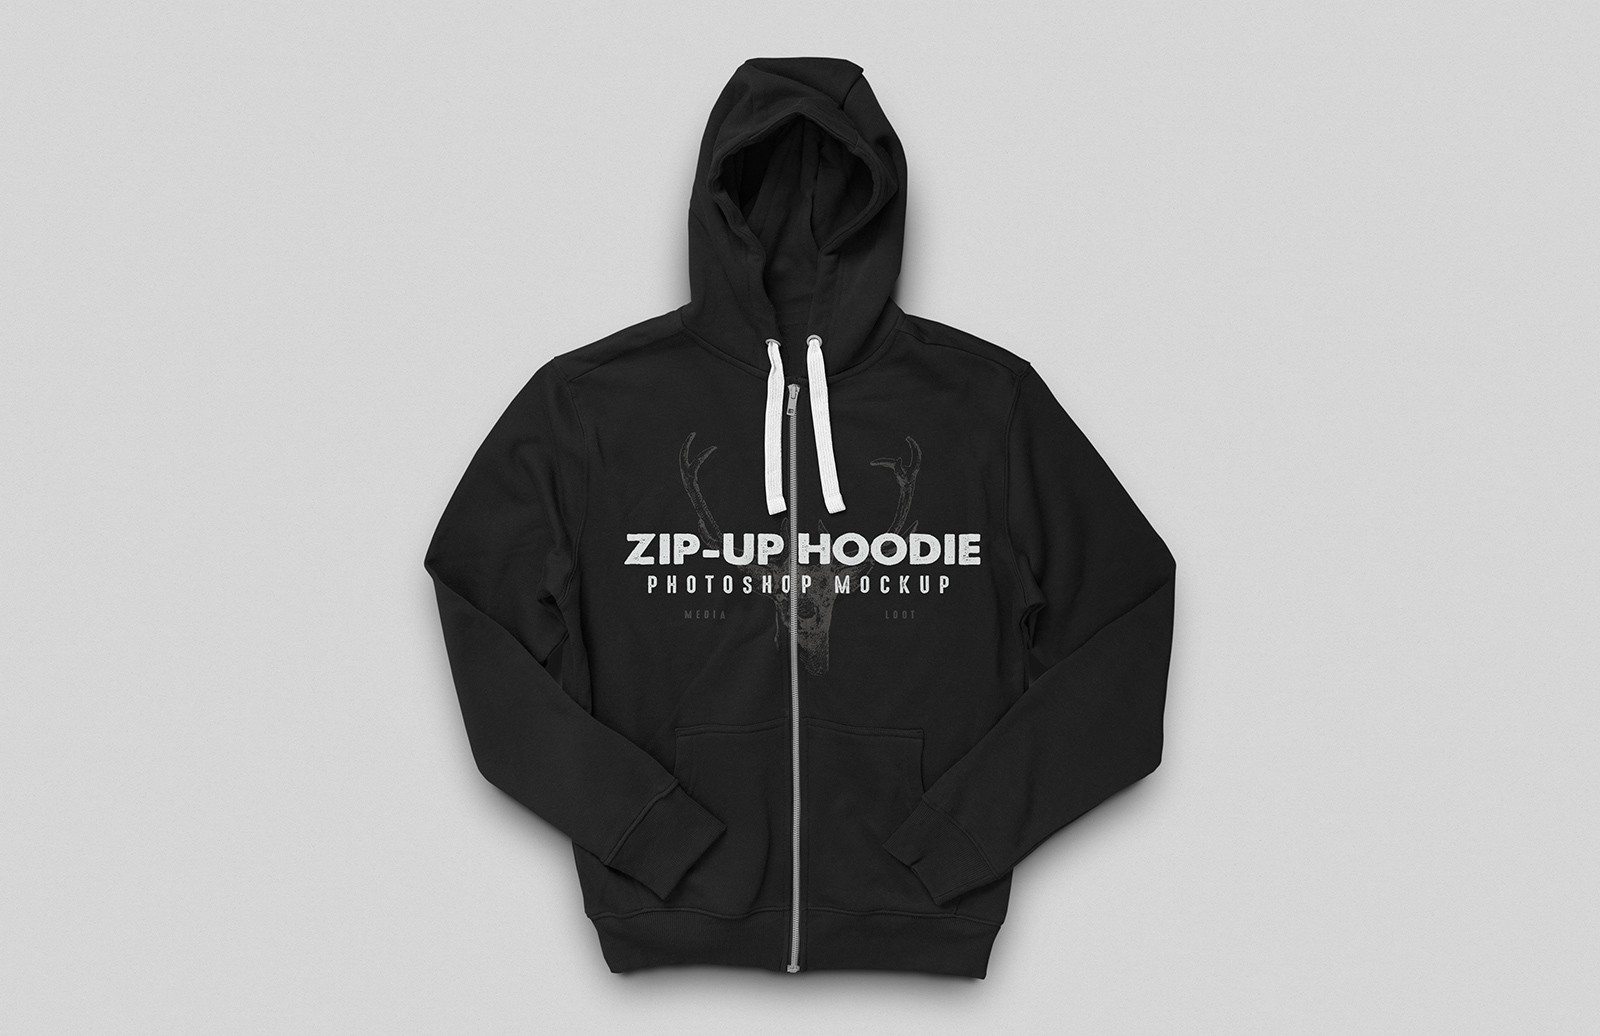 Zip-Up Hoodie Mockup for Photoshop